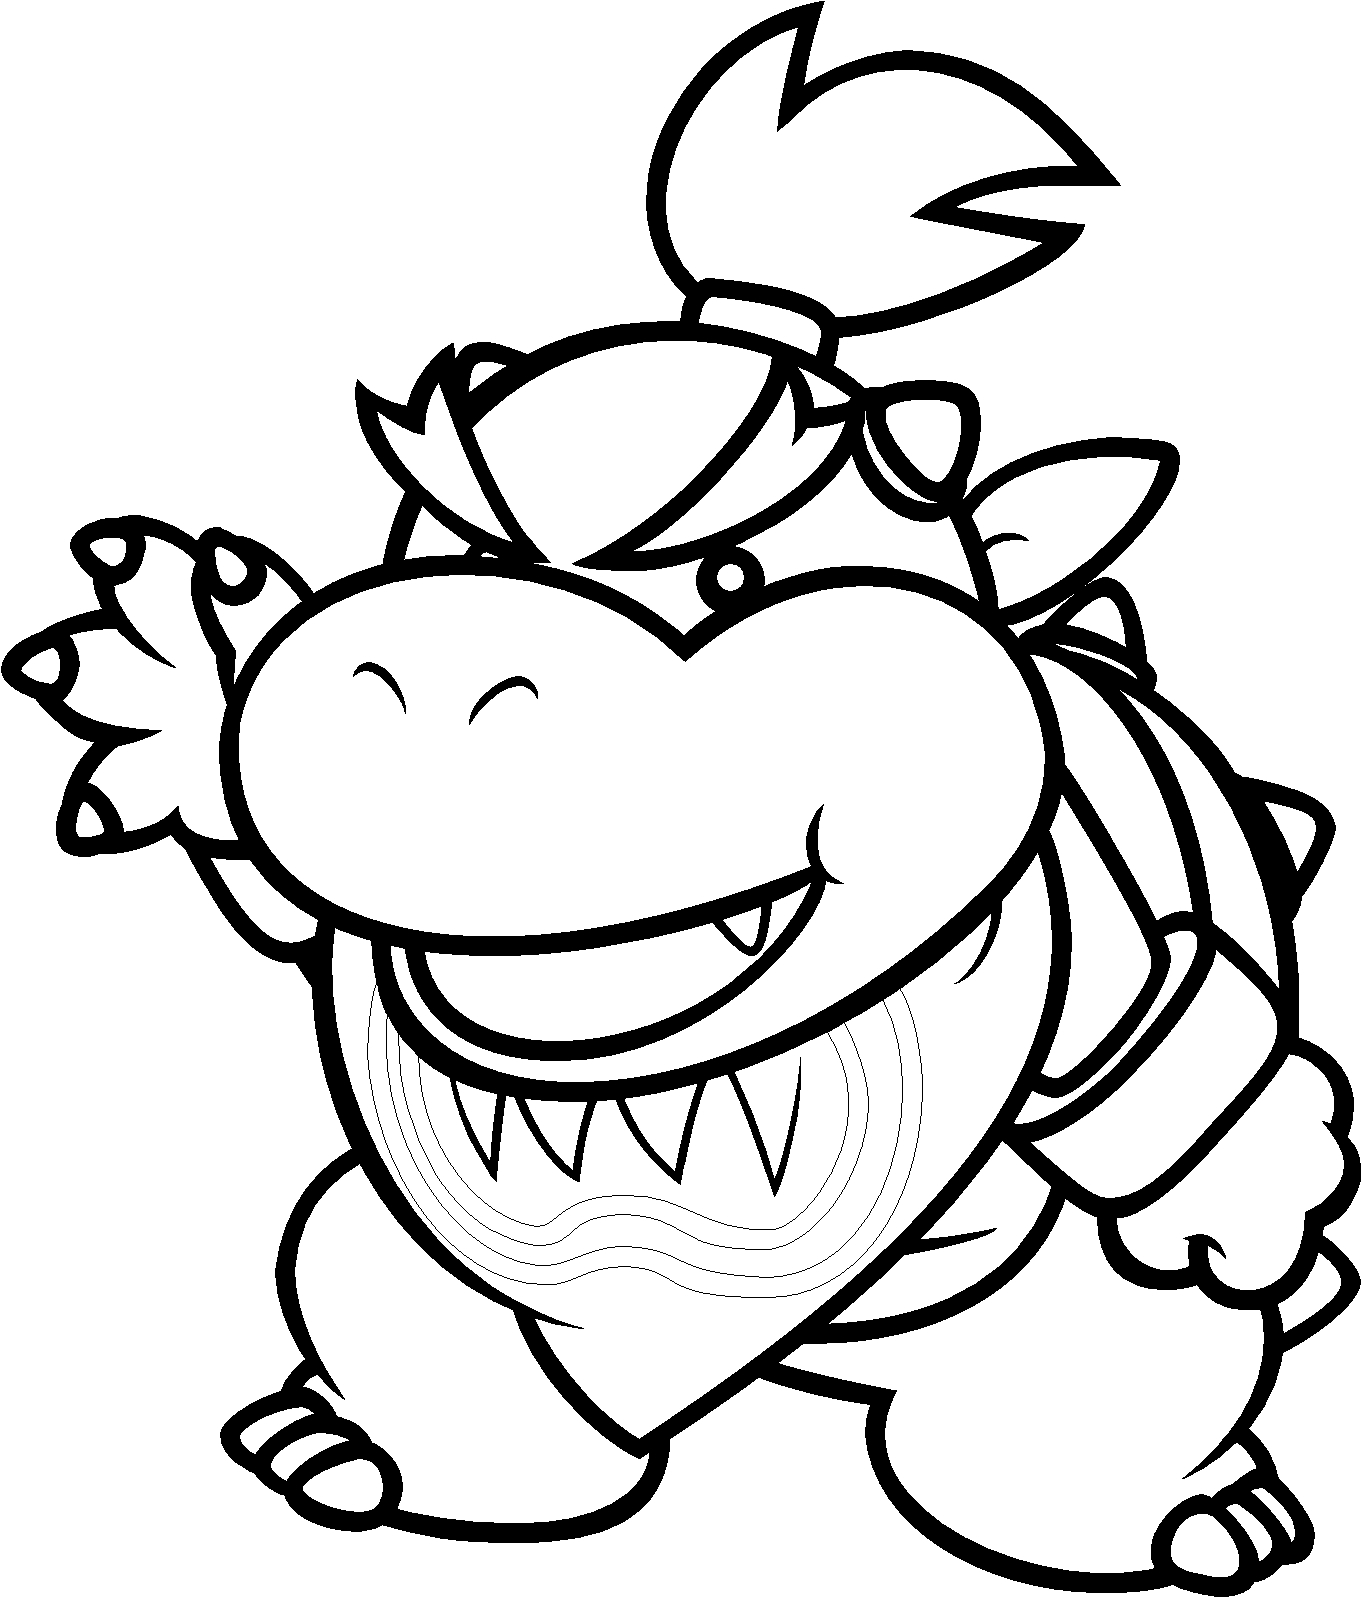 1362x1598 Mario Coloring Pages Bowser Jr Collection Coloring For Kids